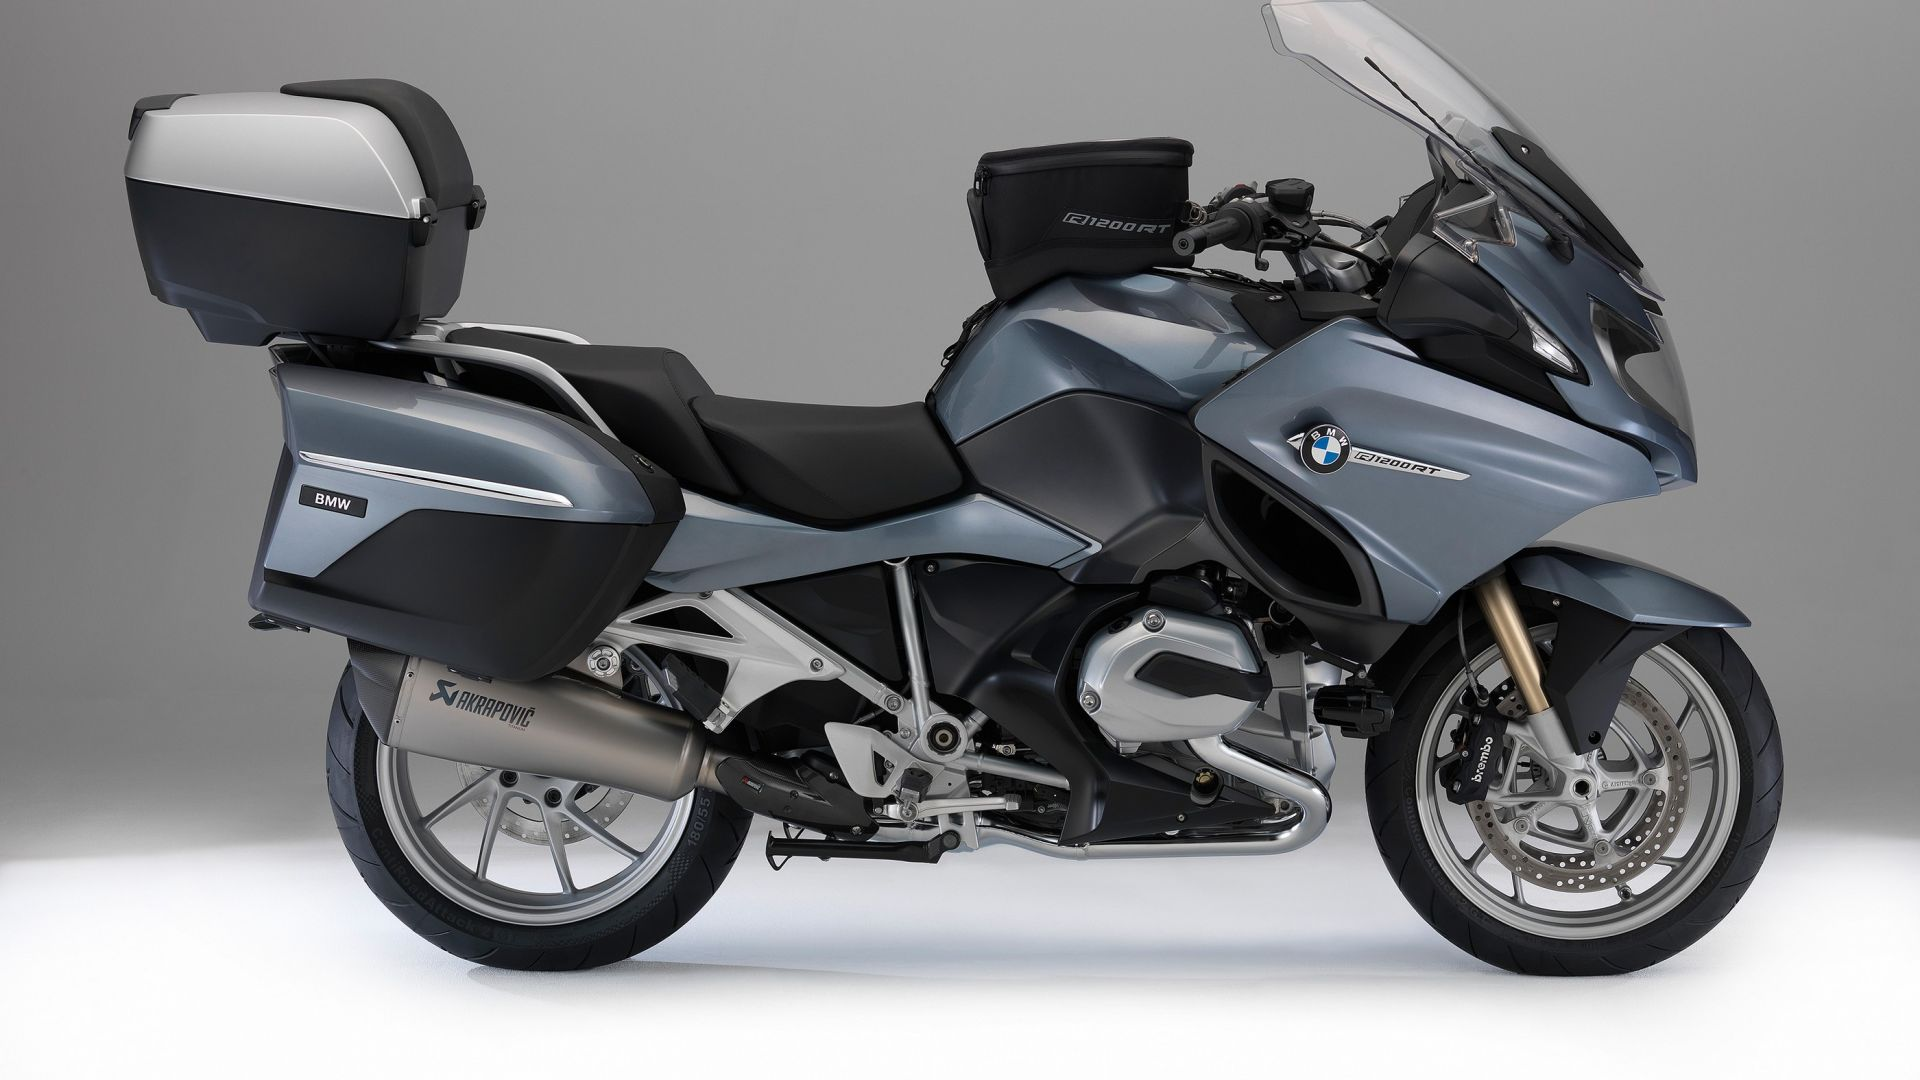 anteprima bmw r 1200 rt 2014 motorbox. Black Bedroom Furniture Sets. Home Design Ideas